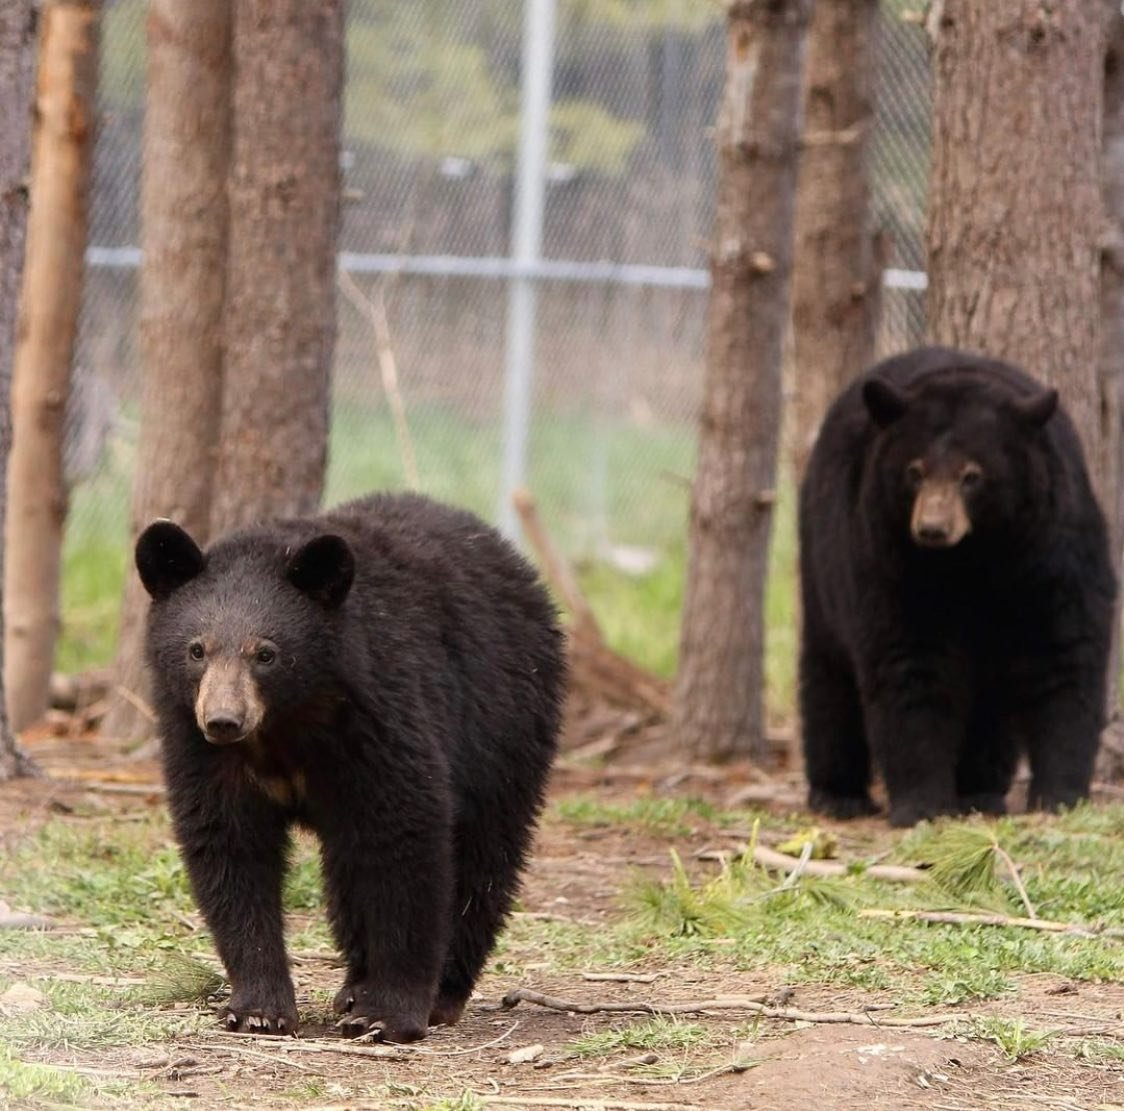 A bear cub walking in front of a mama bear through a wooden fenced in area